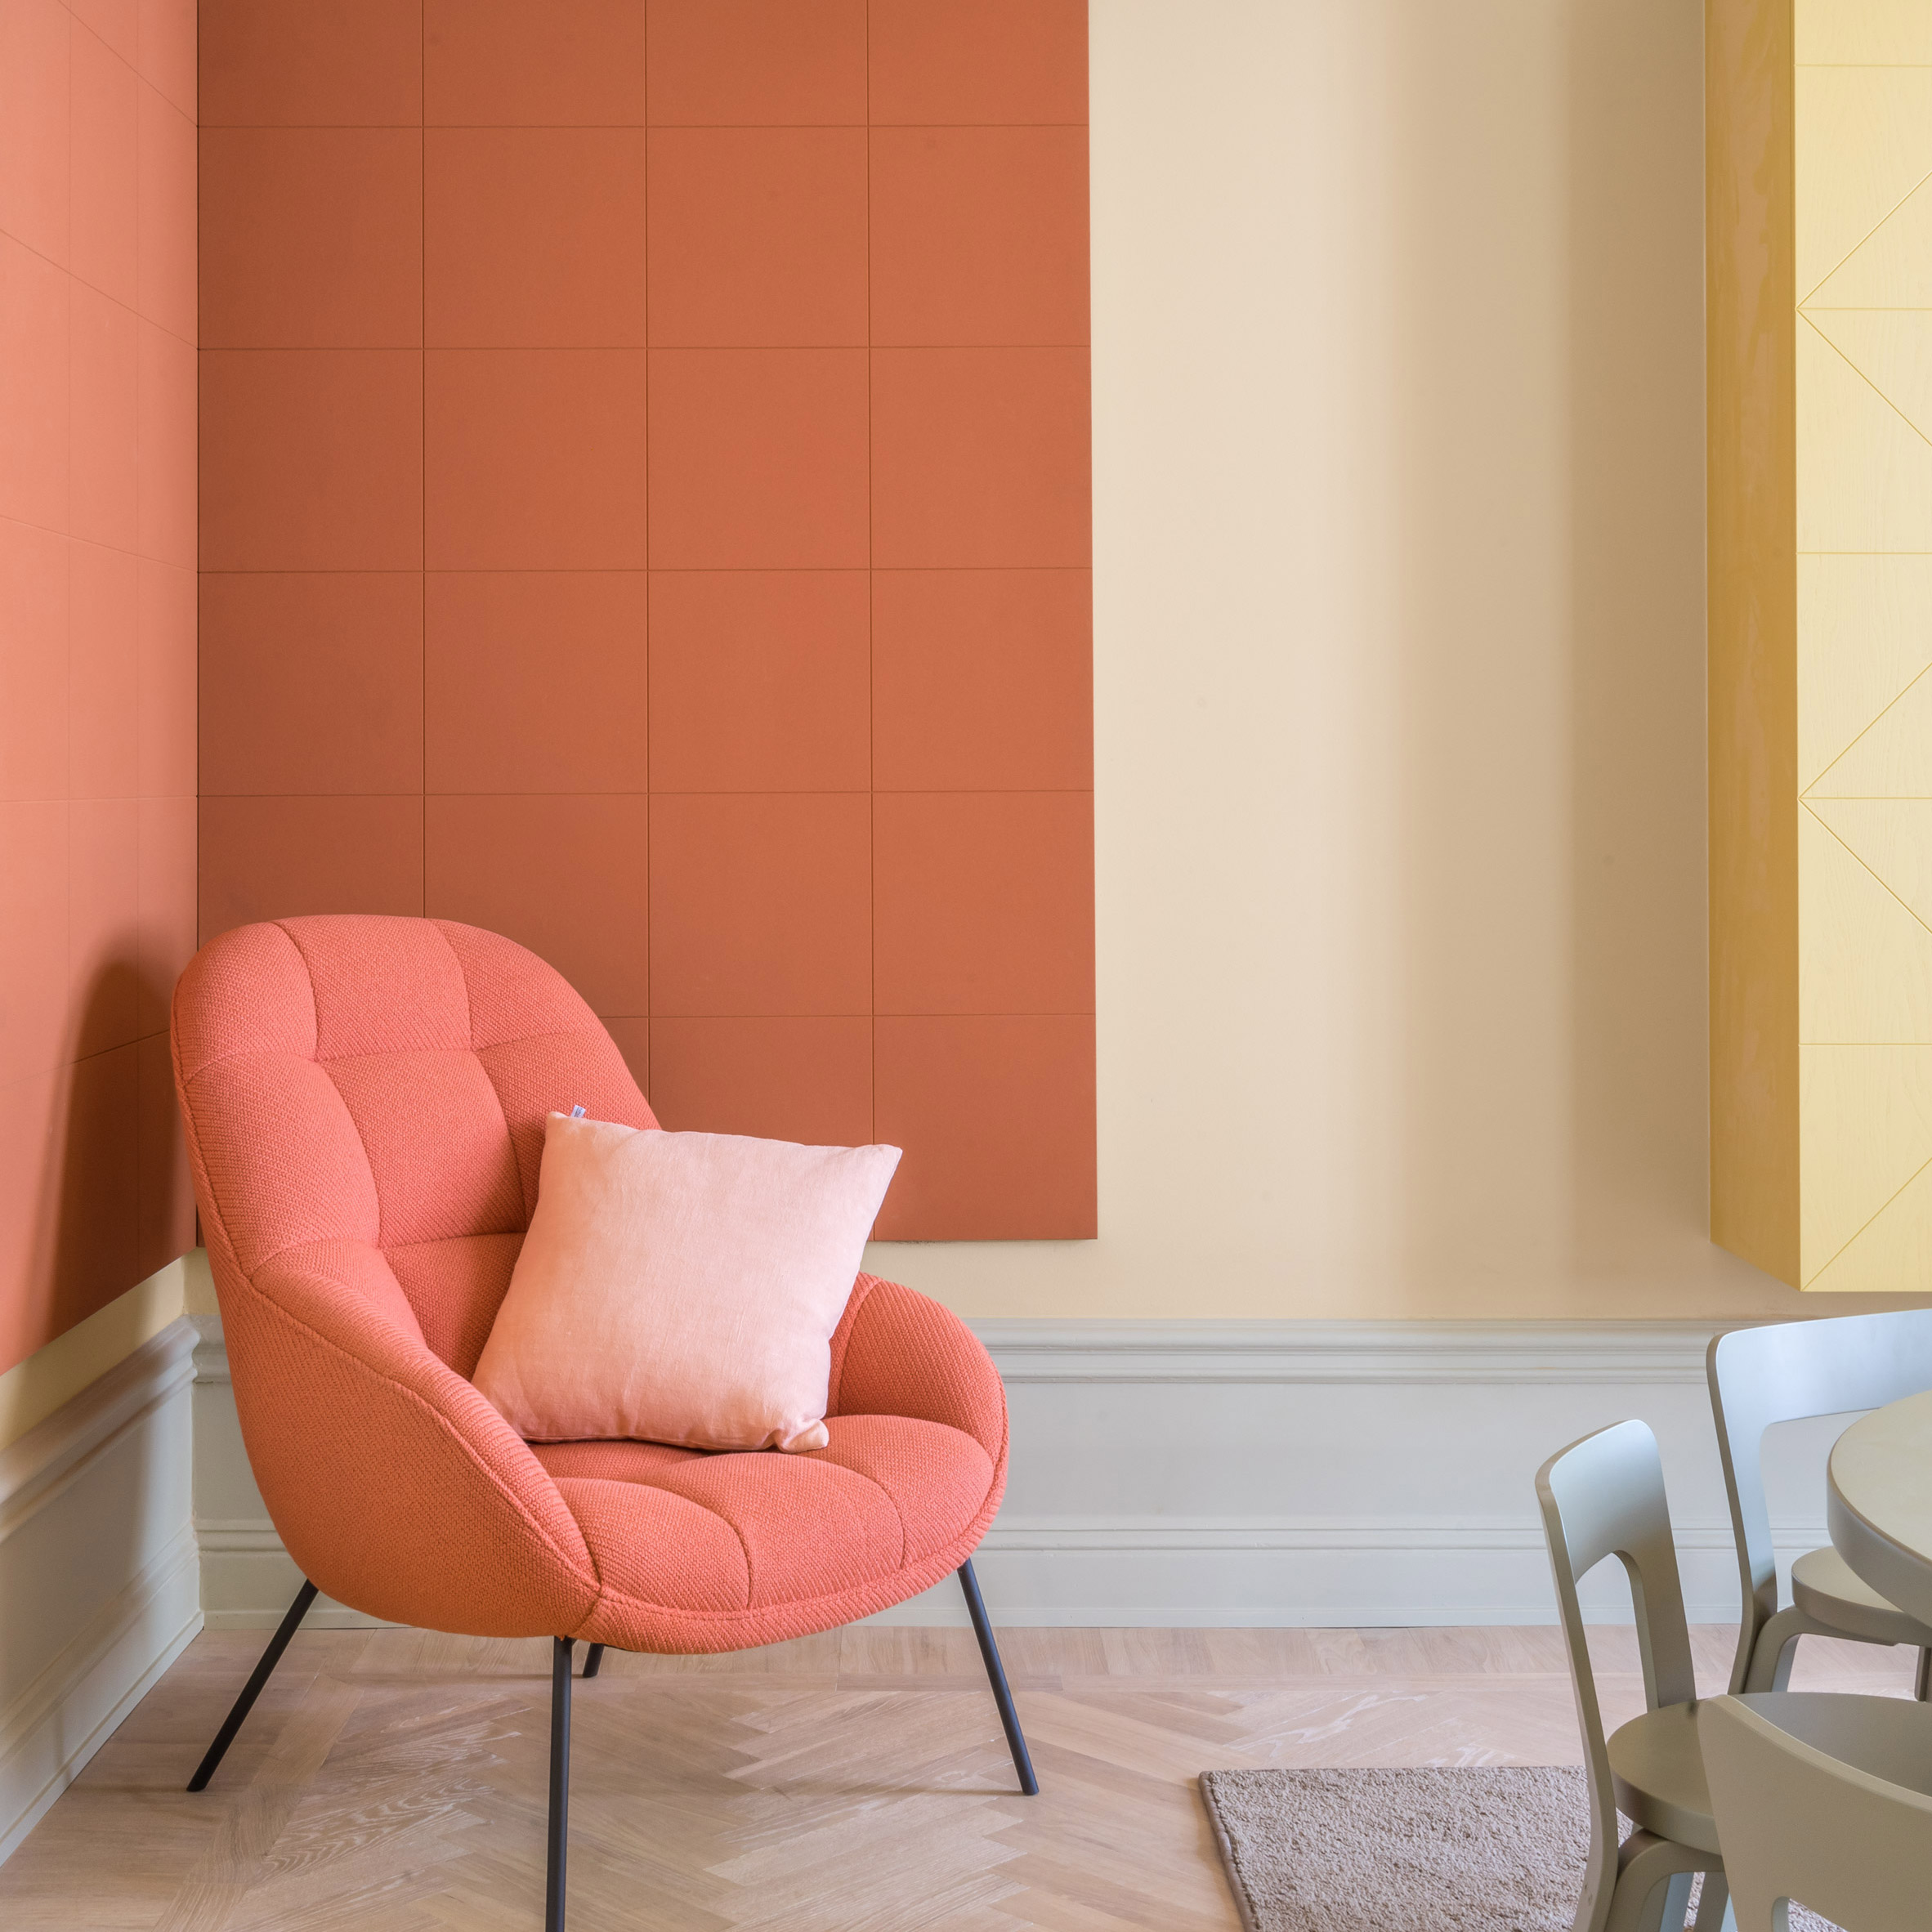 2019 Ultimate Upholstery Trends: Living Coral